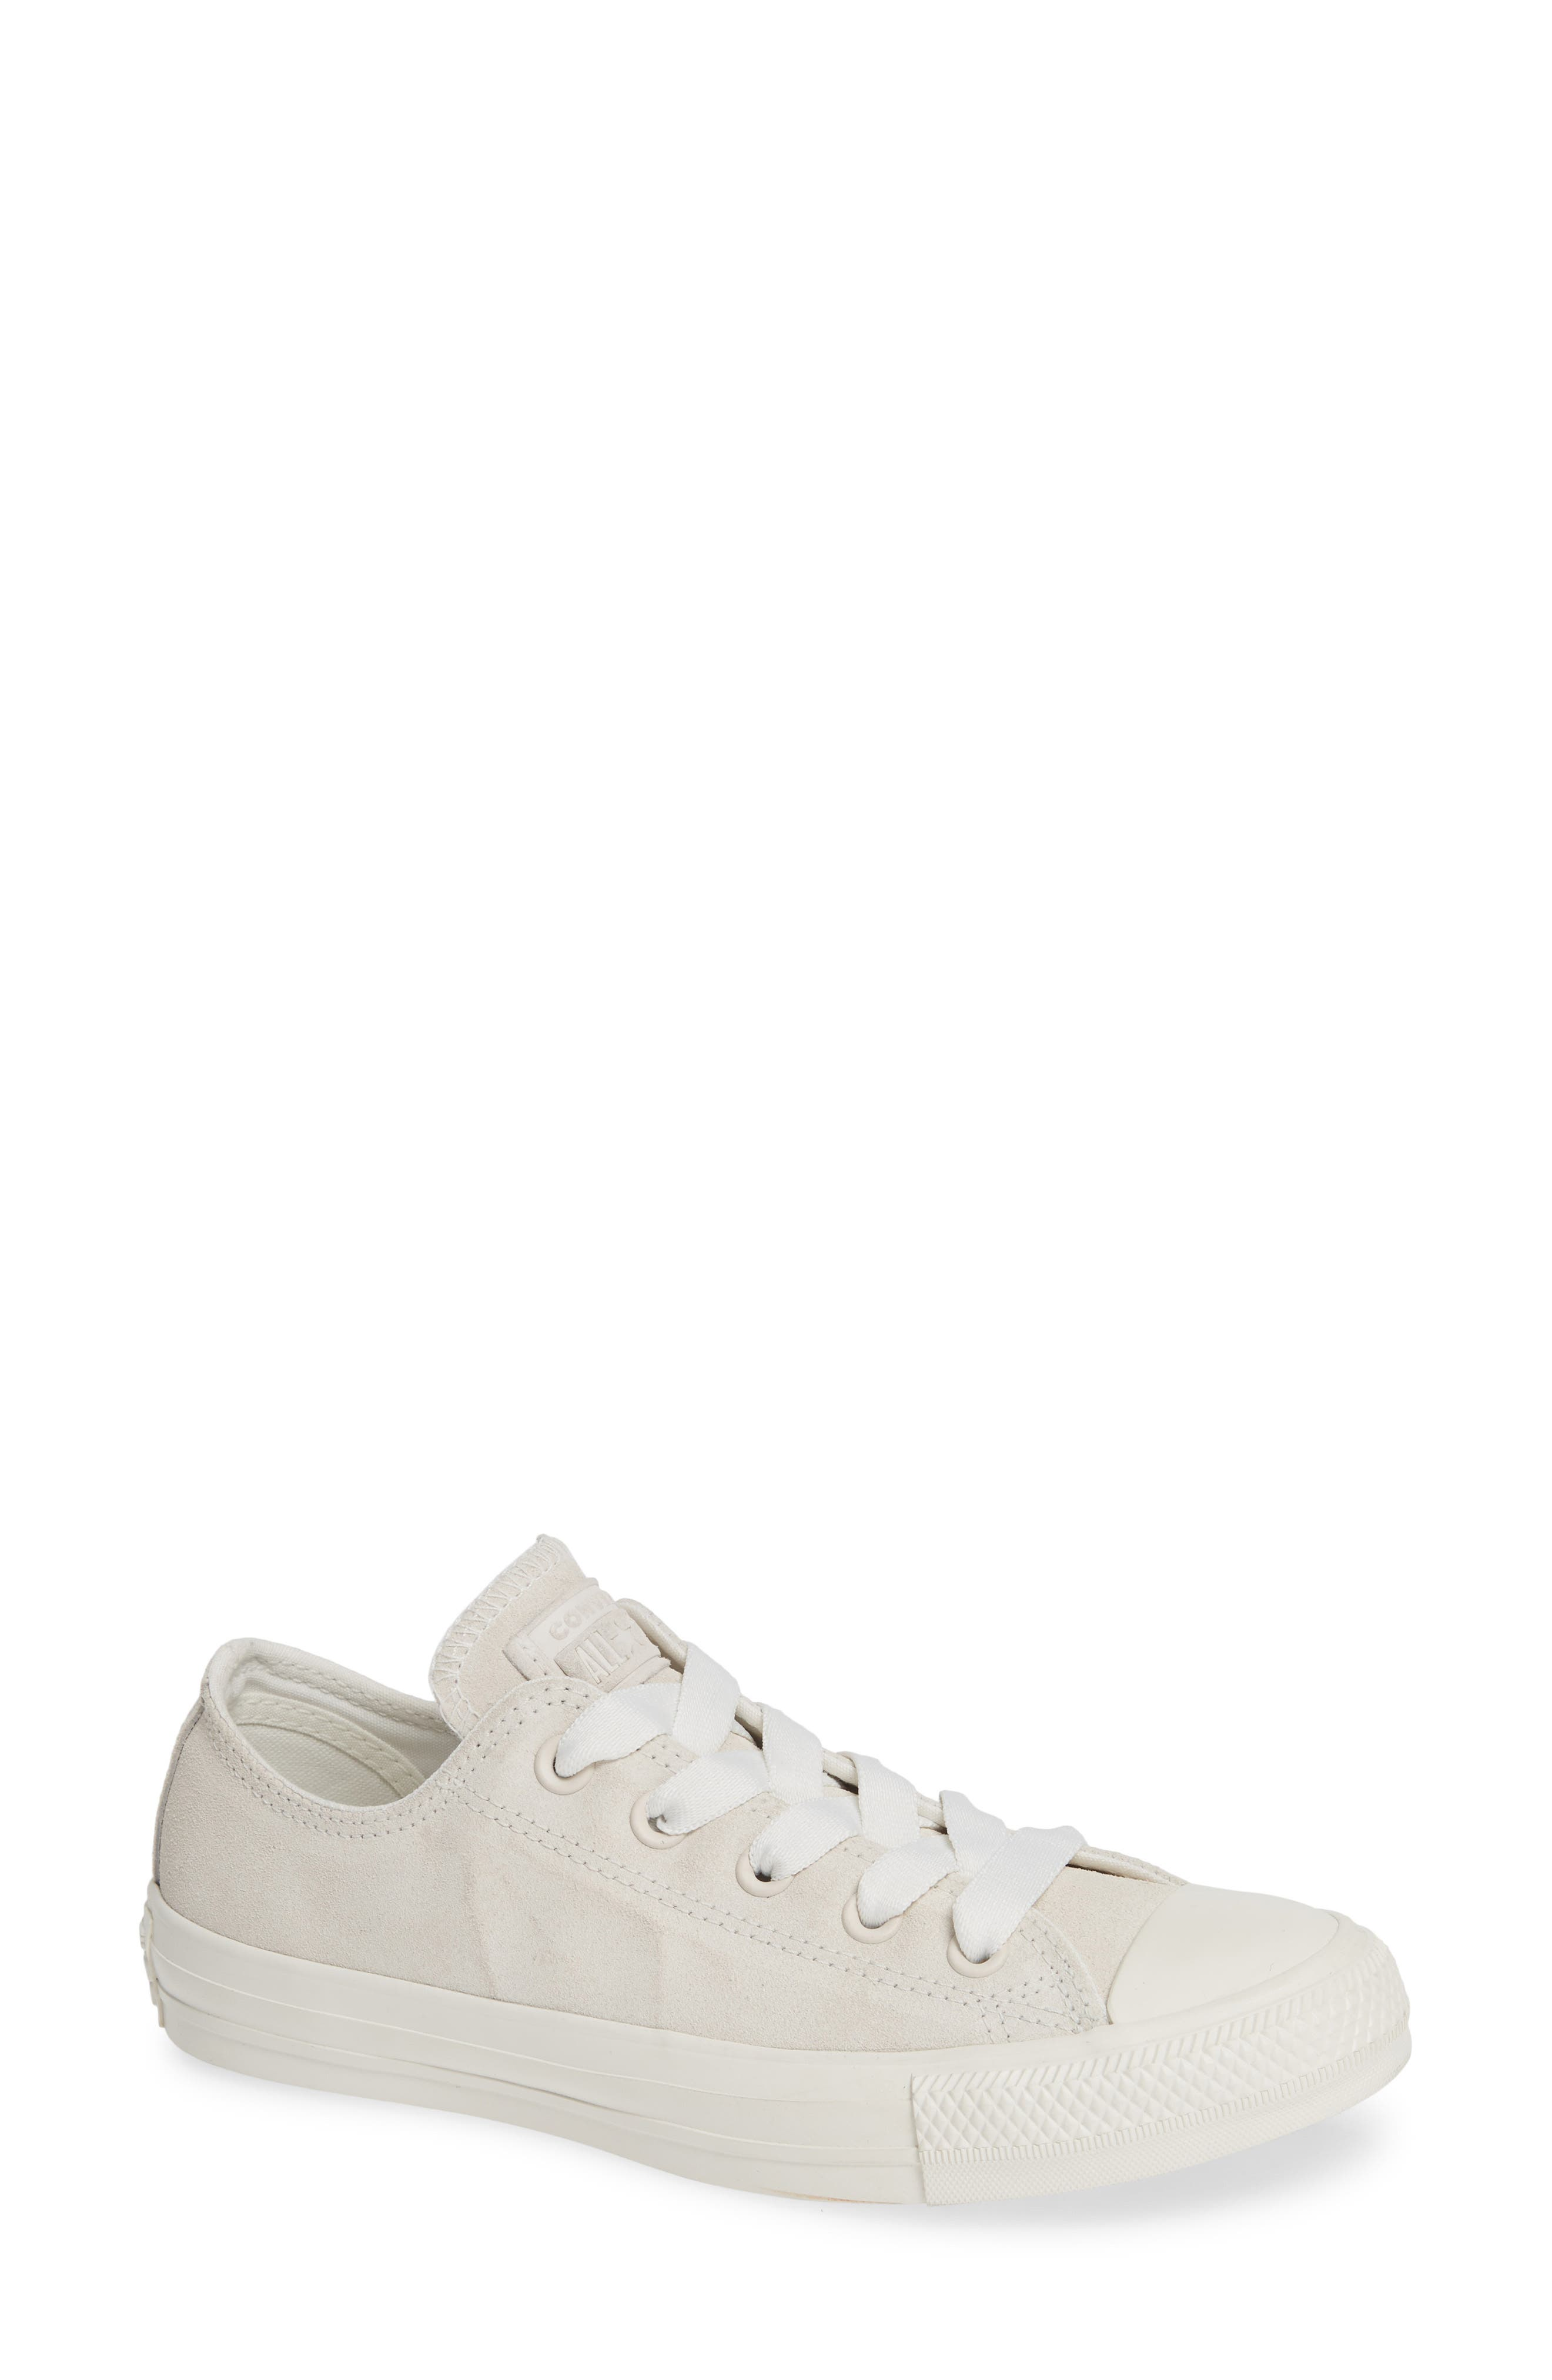 CONVERSE Chuck Taylor<sup>®</sup> All Star<sup>®</sup> Ox Sneaker, Main, color, VINTAGE WHITE SUEDE